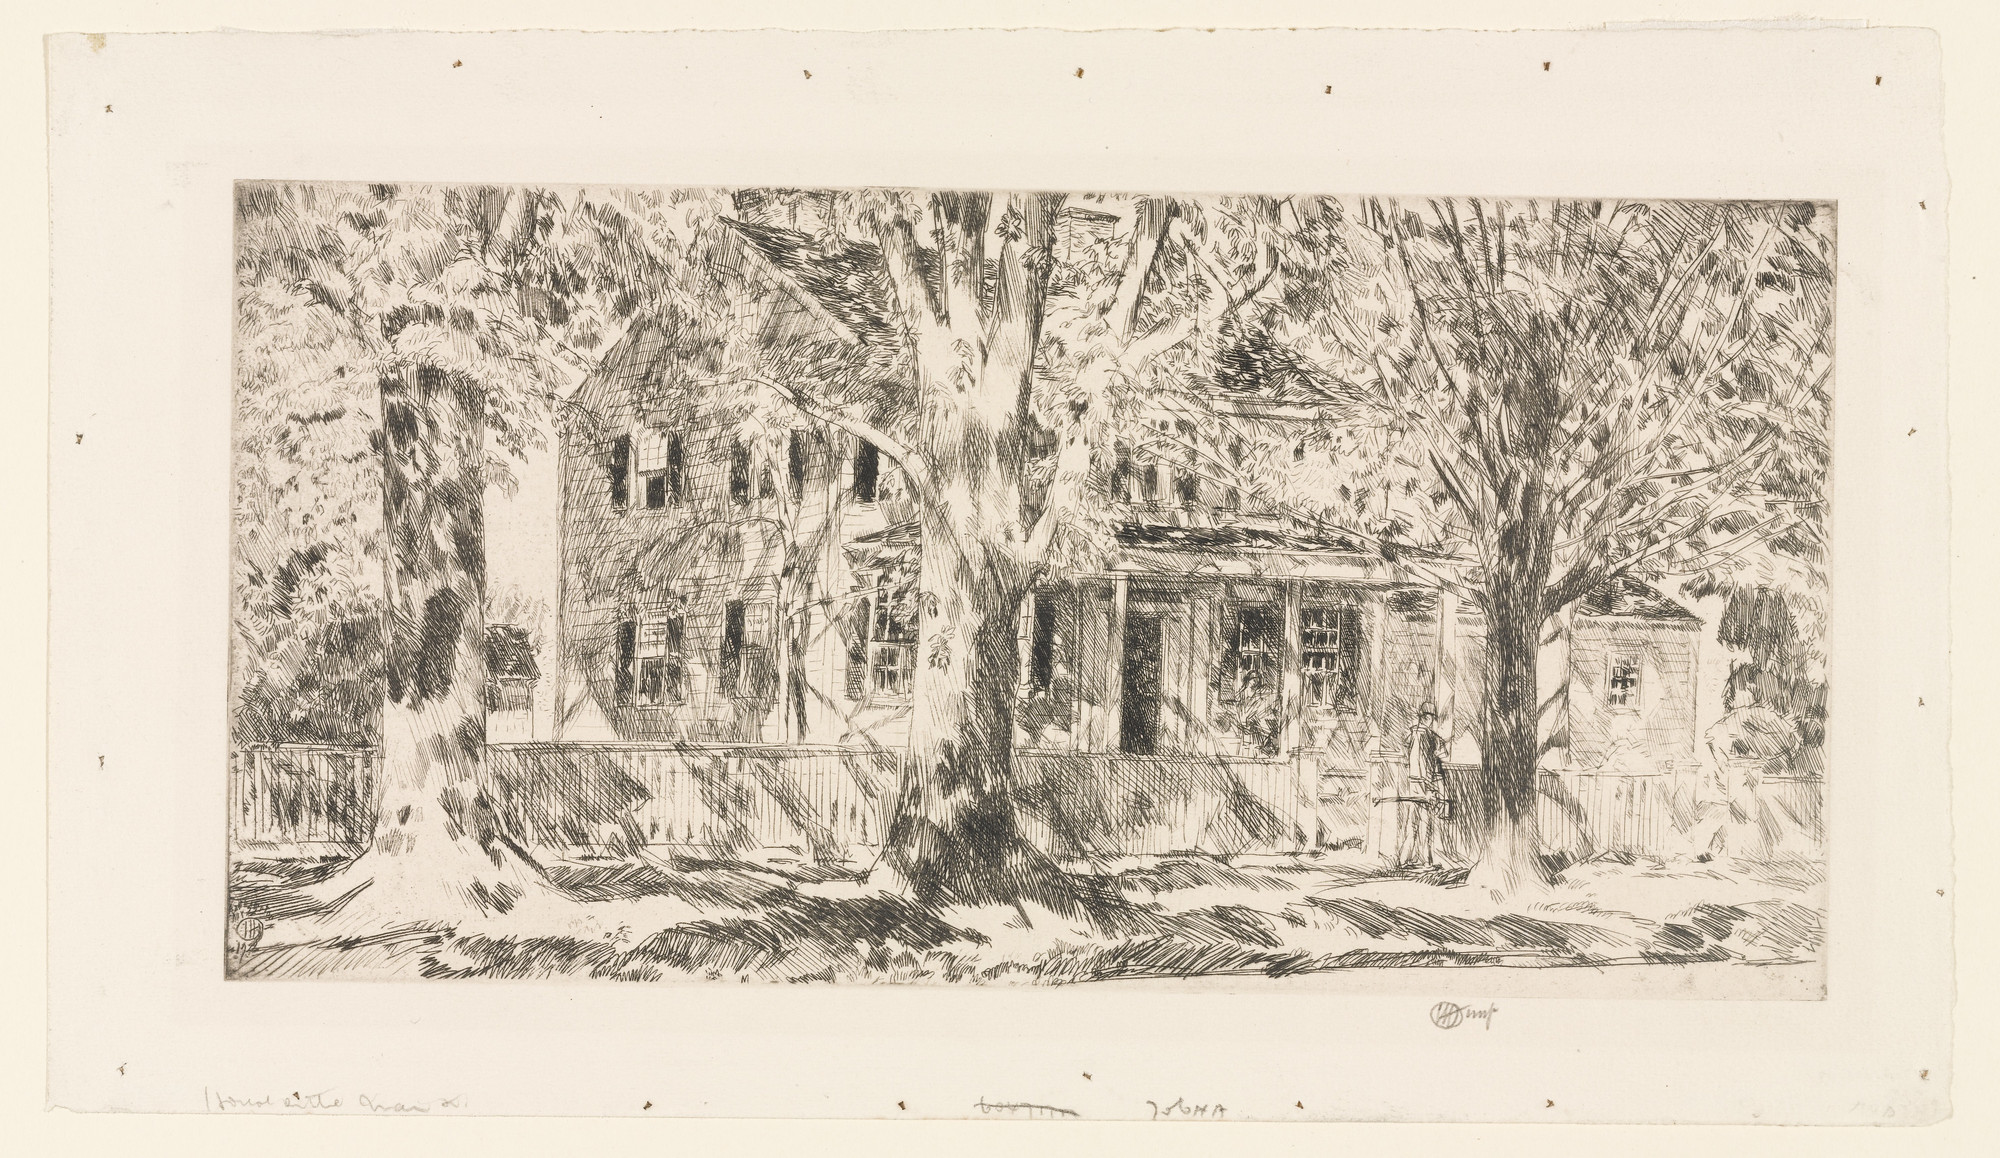 Childe Hassam. House on Main Street, Easthampton. 1922